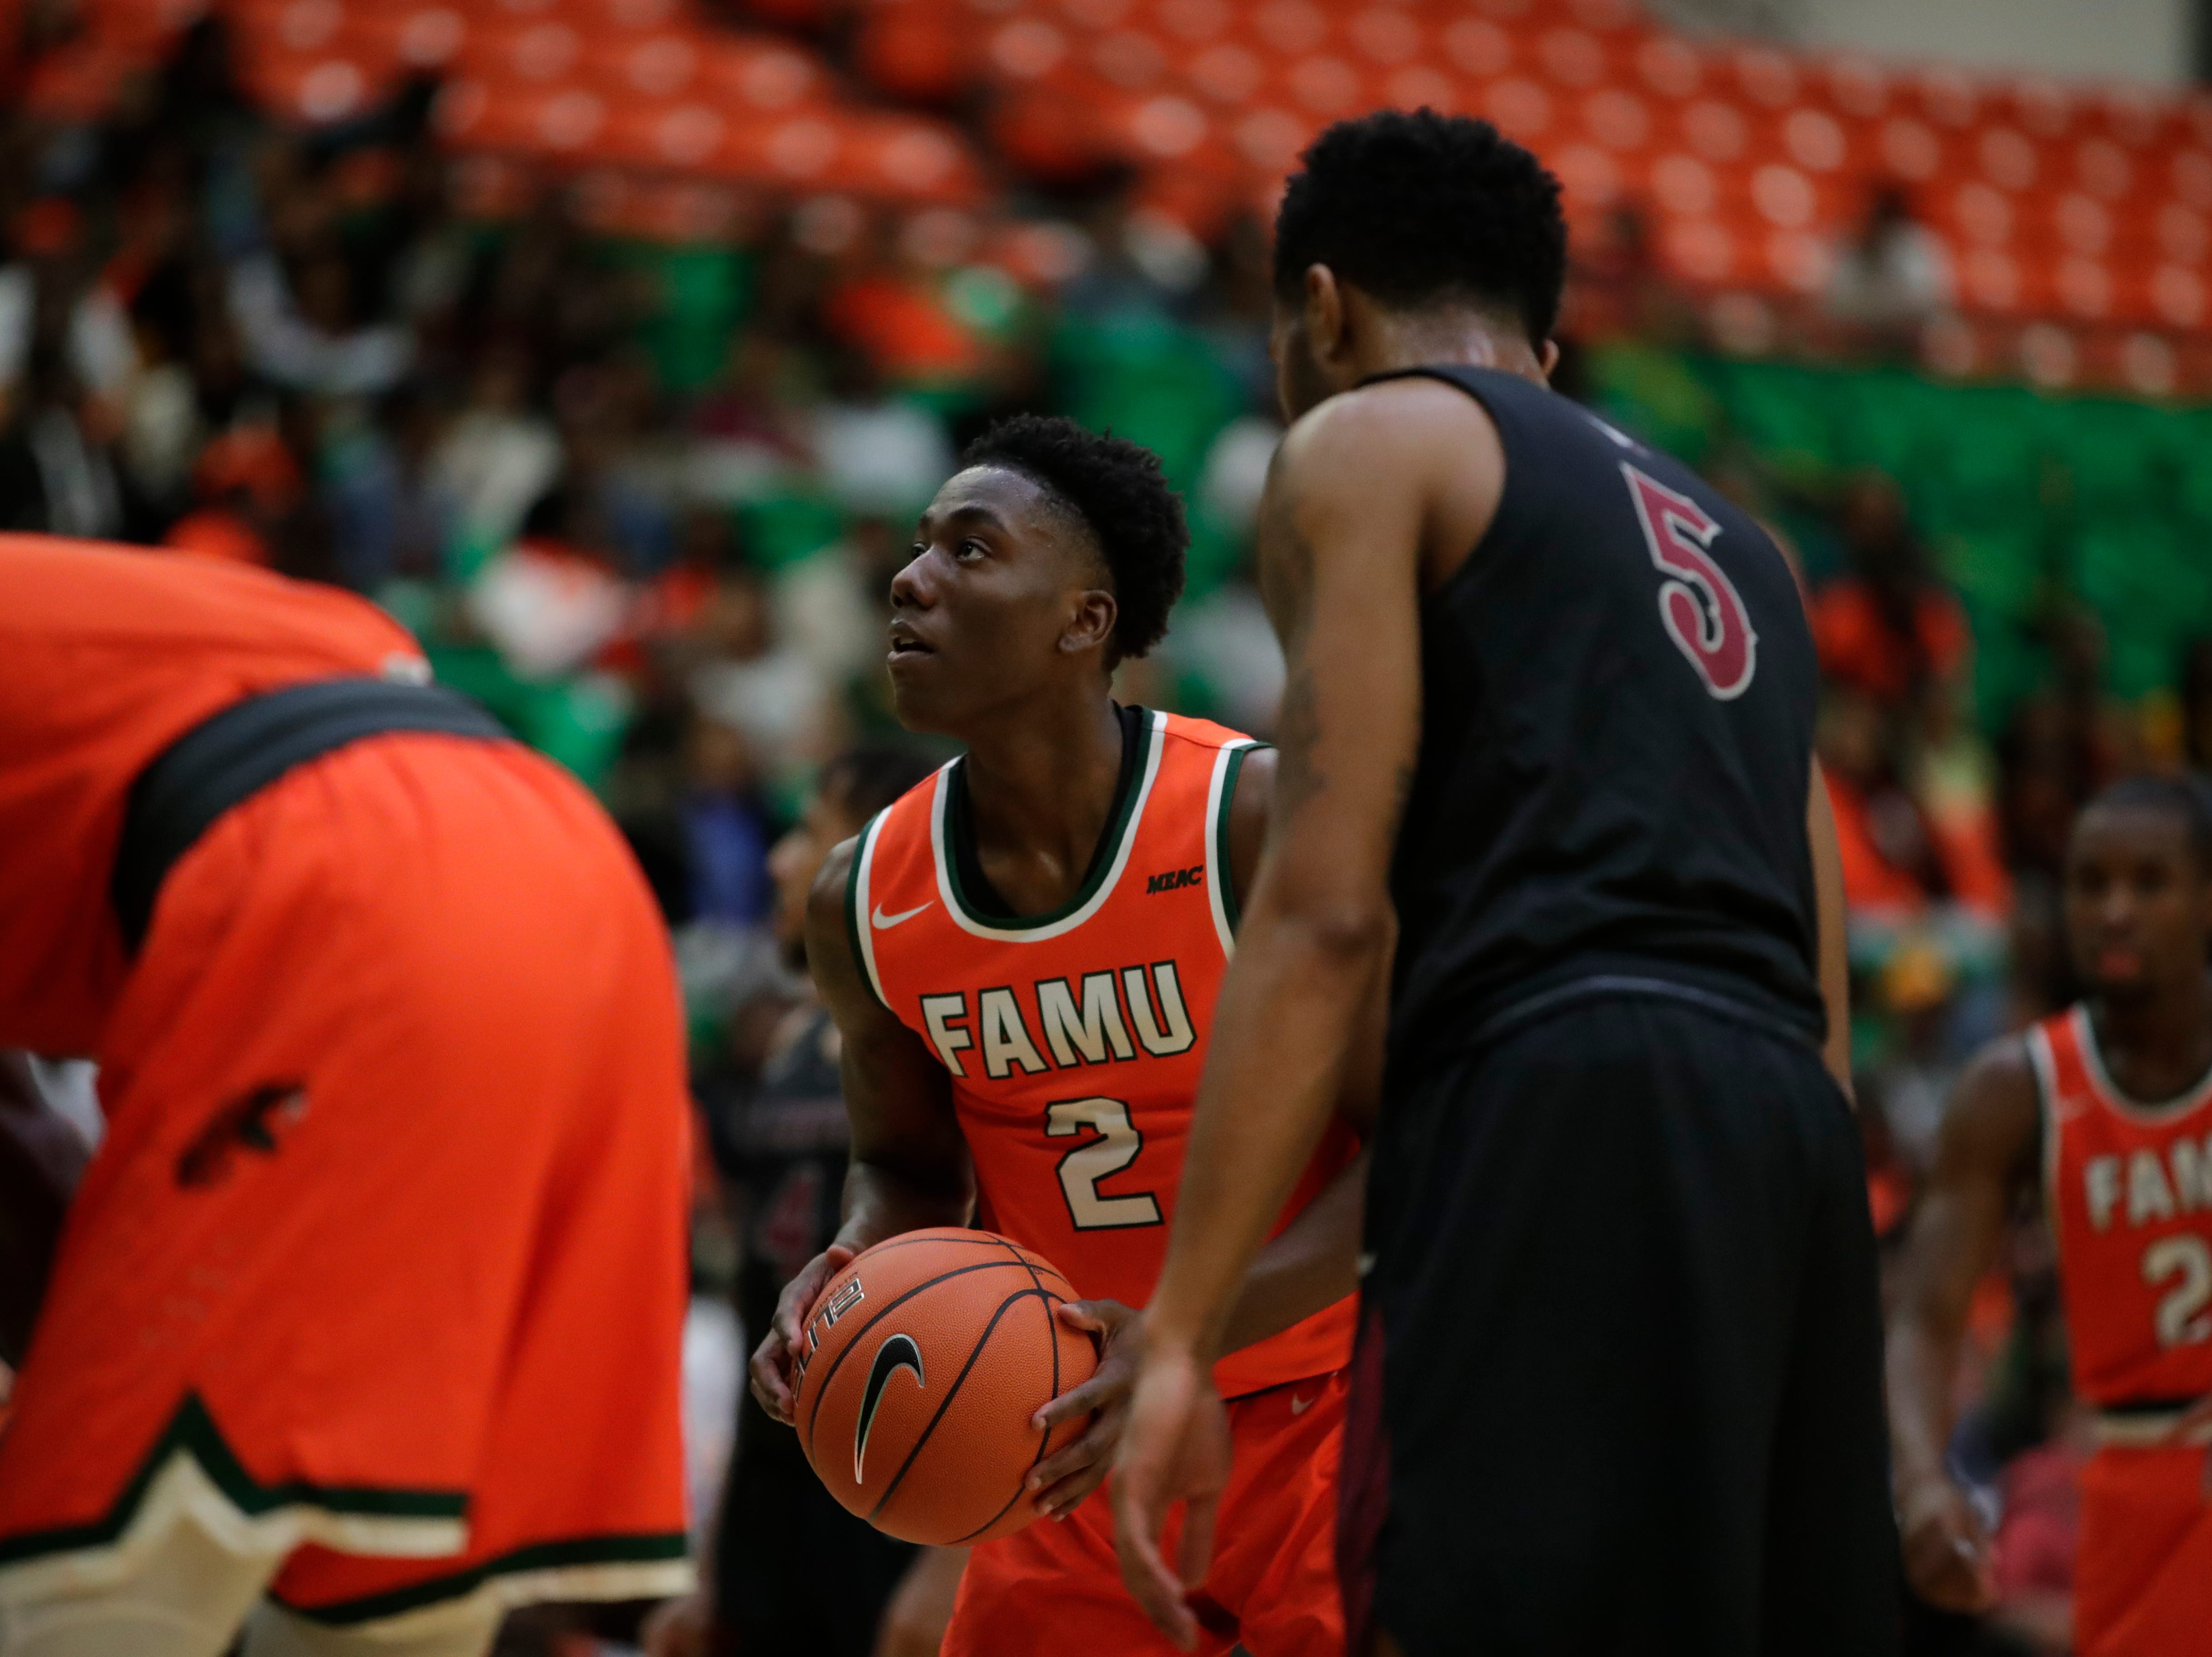 Florida A&M Rattlers guard Kamron Reaves (2) shoots a free throw during a game between FAMU and North Carolina Central at the Alfred Lawson Jr. Multipurpose Center Monday, Feb. 4, 2019.